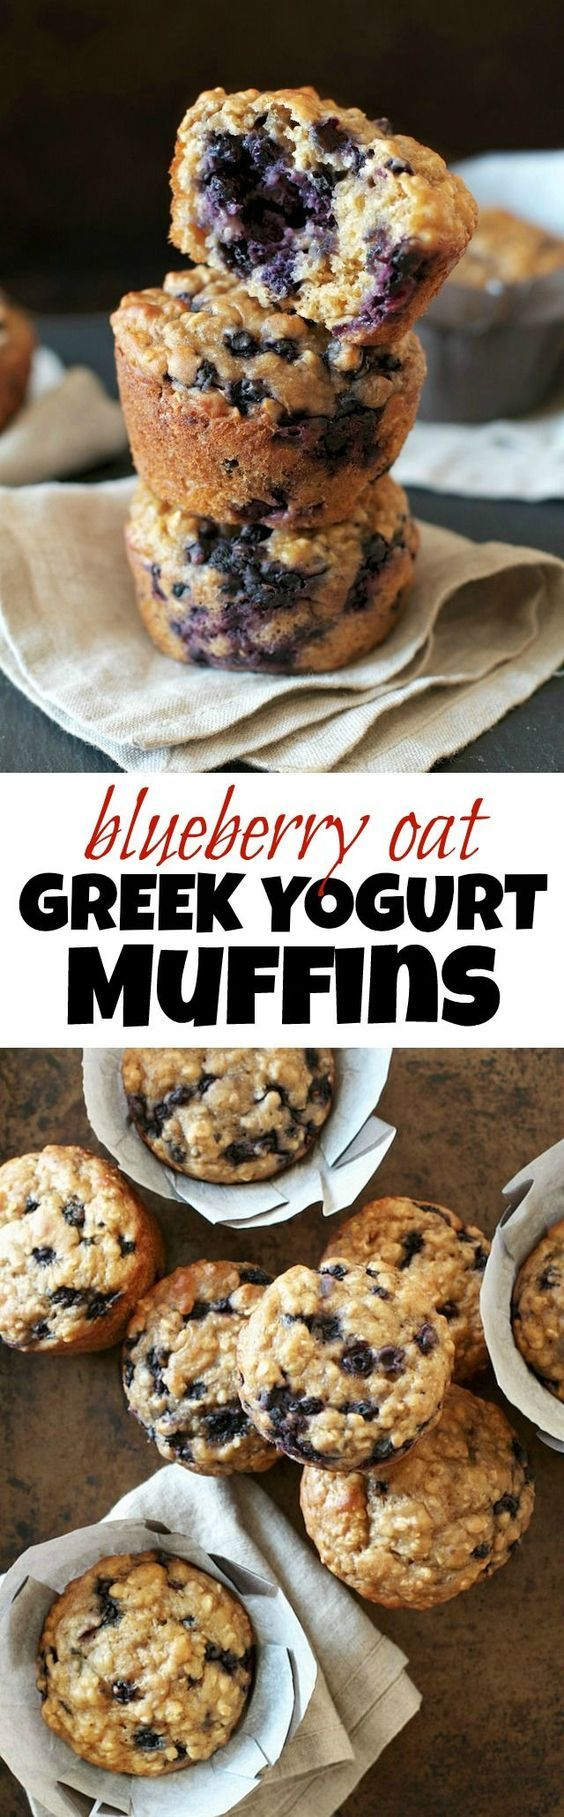 You won't find any butter or oil in these ridiculously soft and tender Blueberry Oat Greek Yogurt Muffins! What you will find is plenty of naturally sweetened, blueberry goodness in each bite!